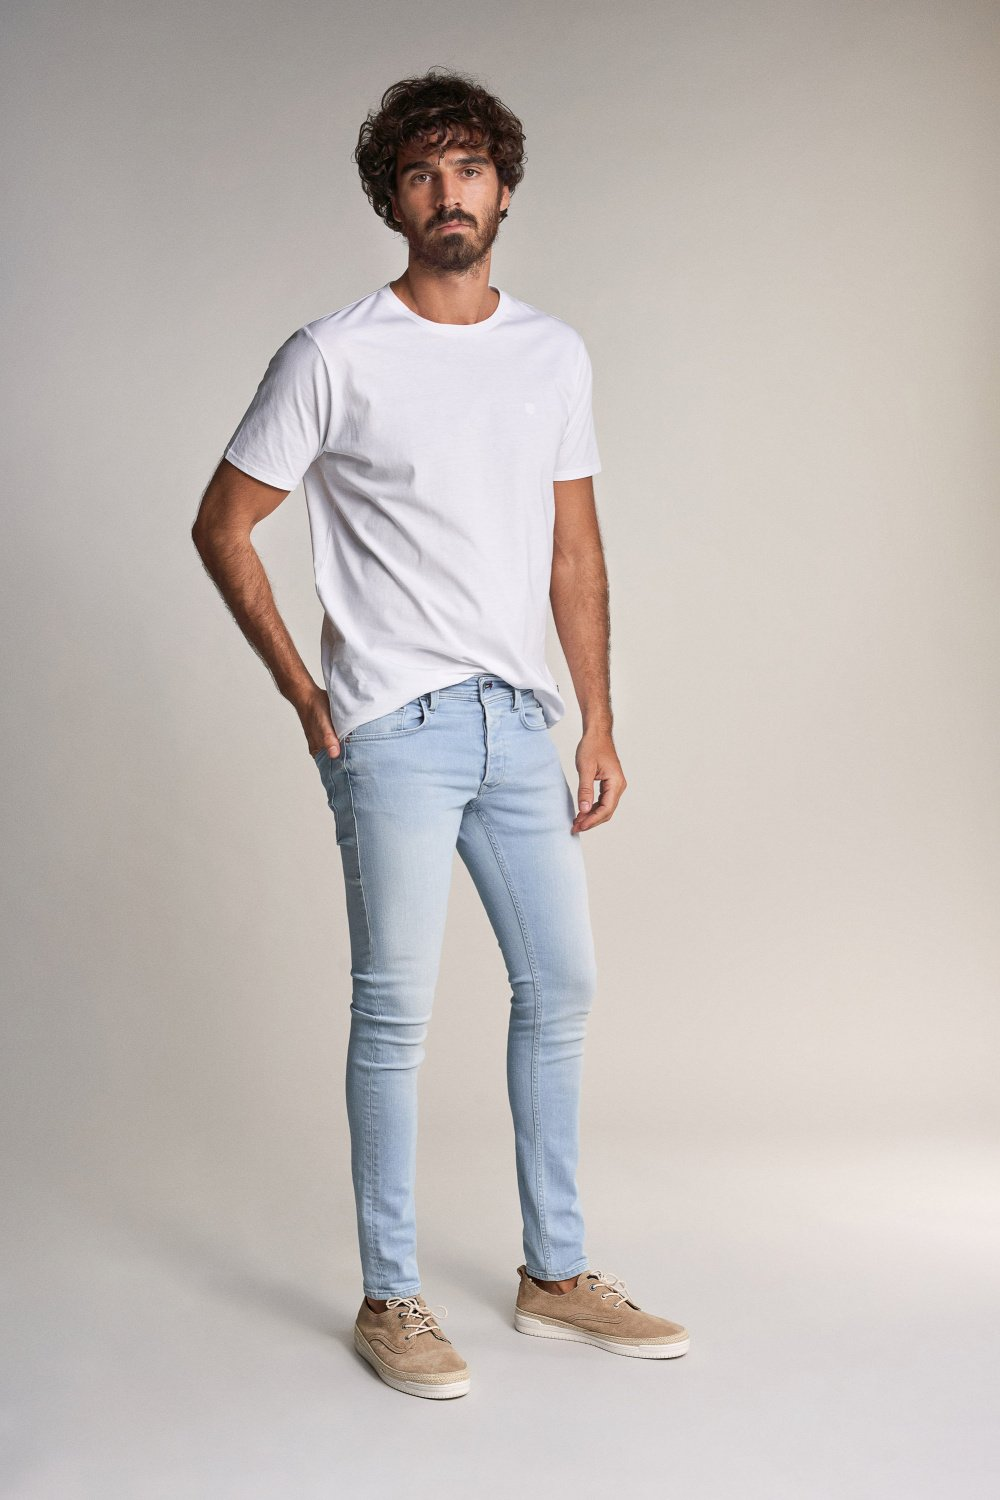 Clash skinny jeans ready to go - Salsa